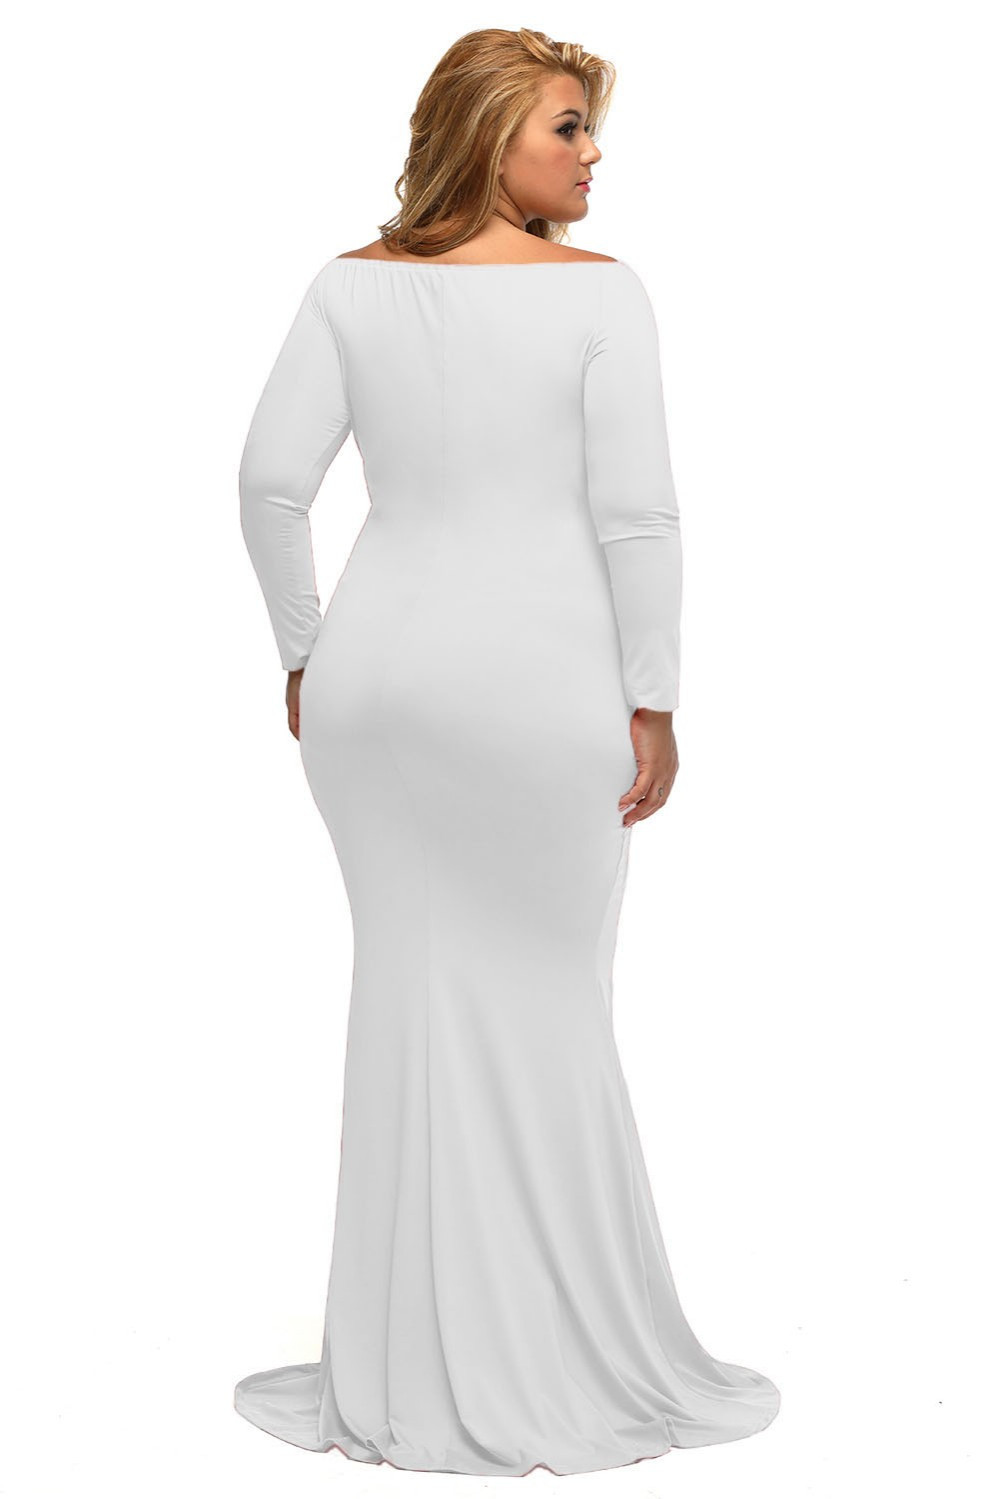 Plus Sized Maxi dresses with V neck at Bling Brides Bouquet - Online Bridal  image 2